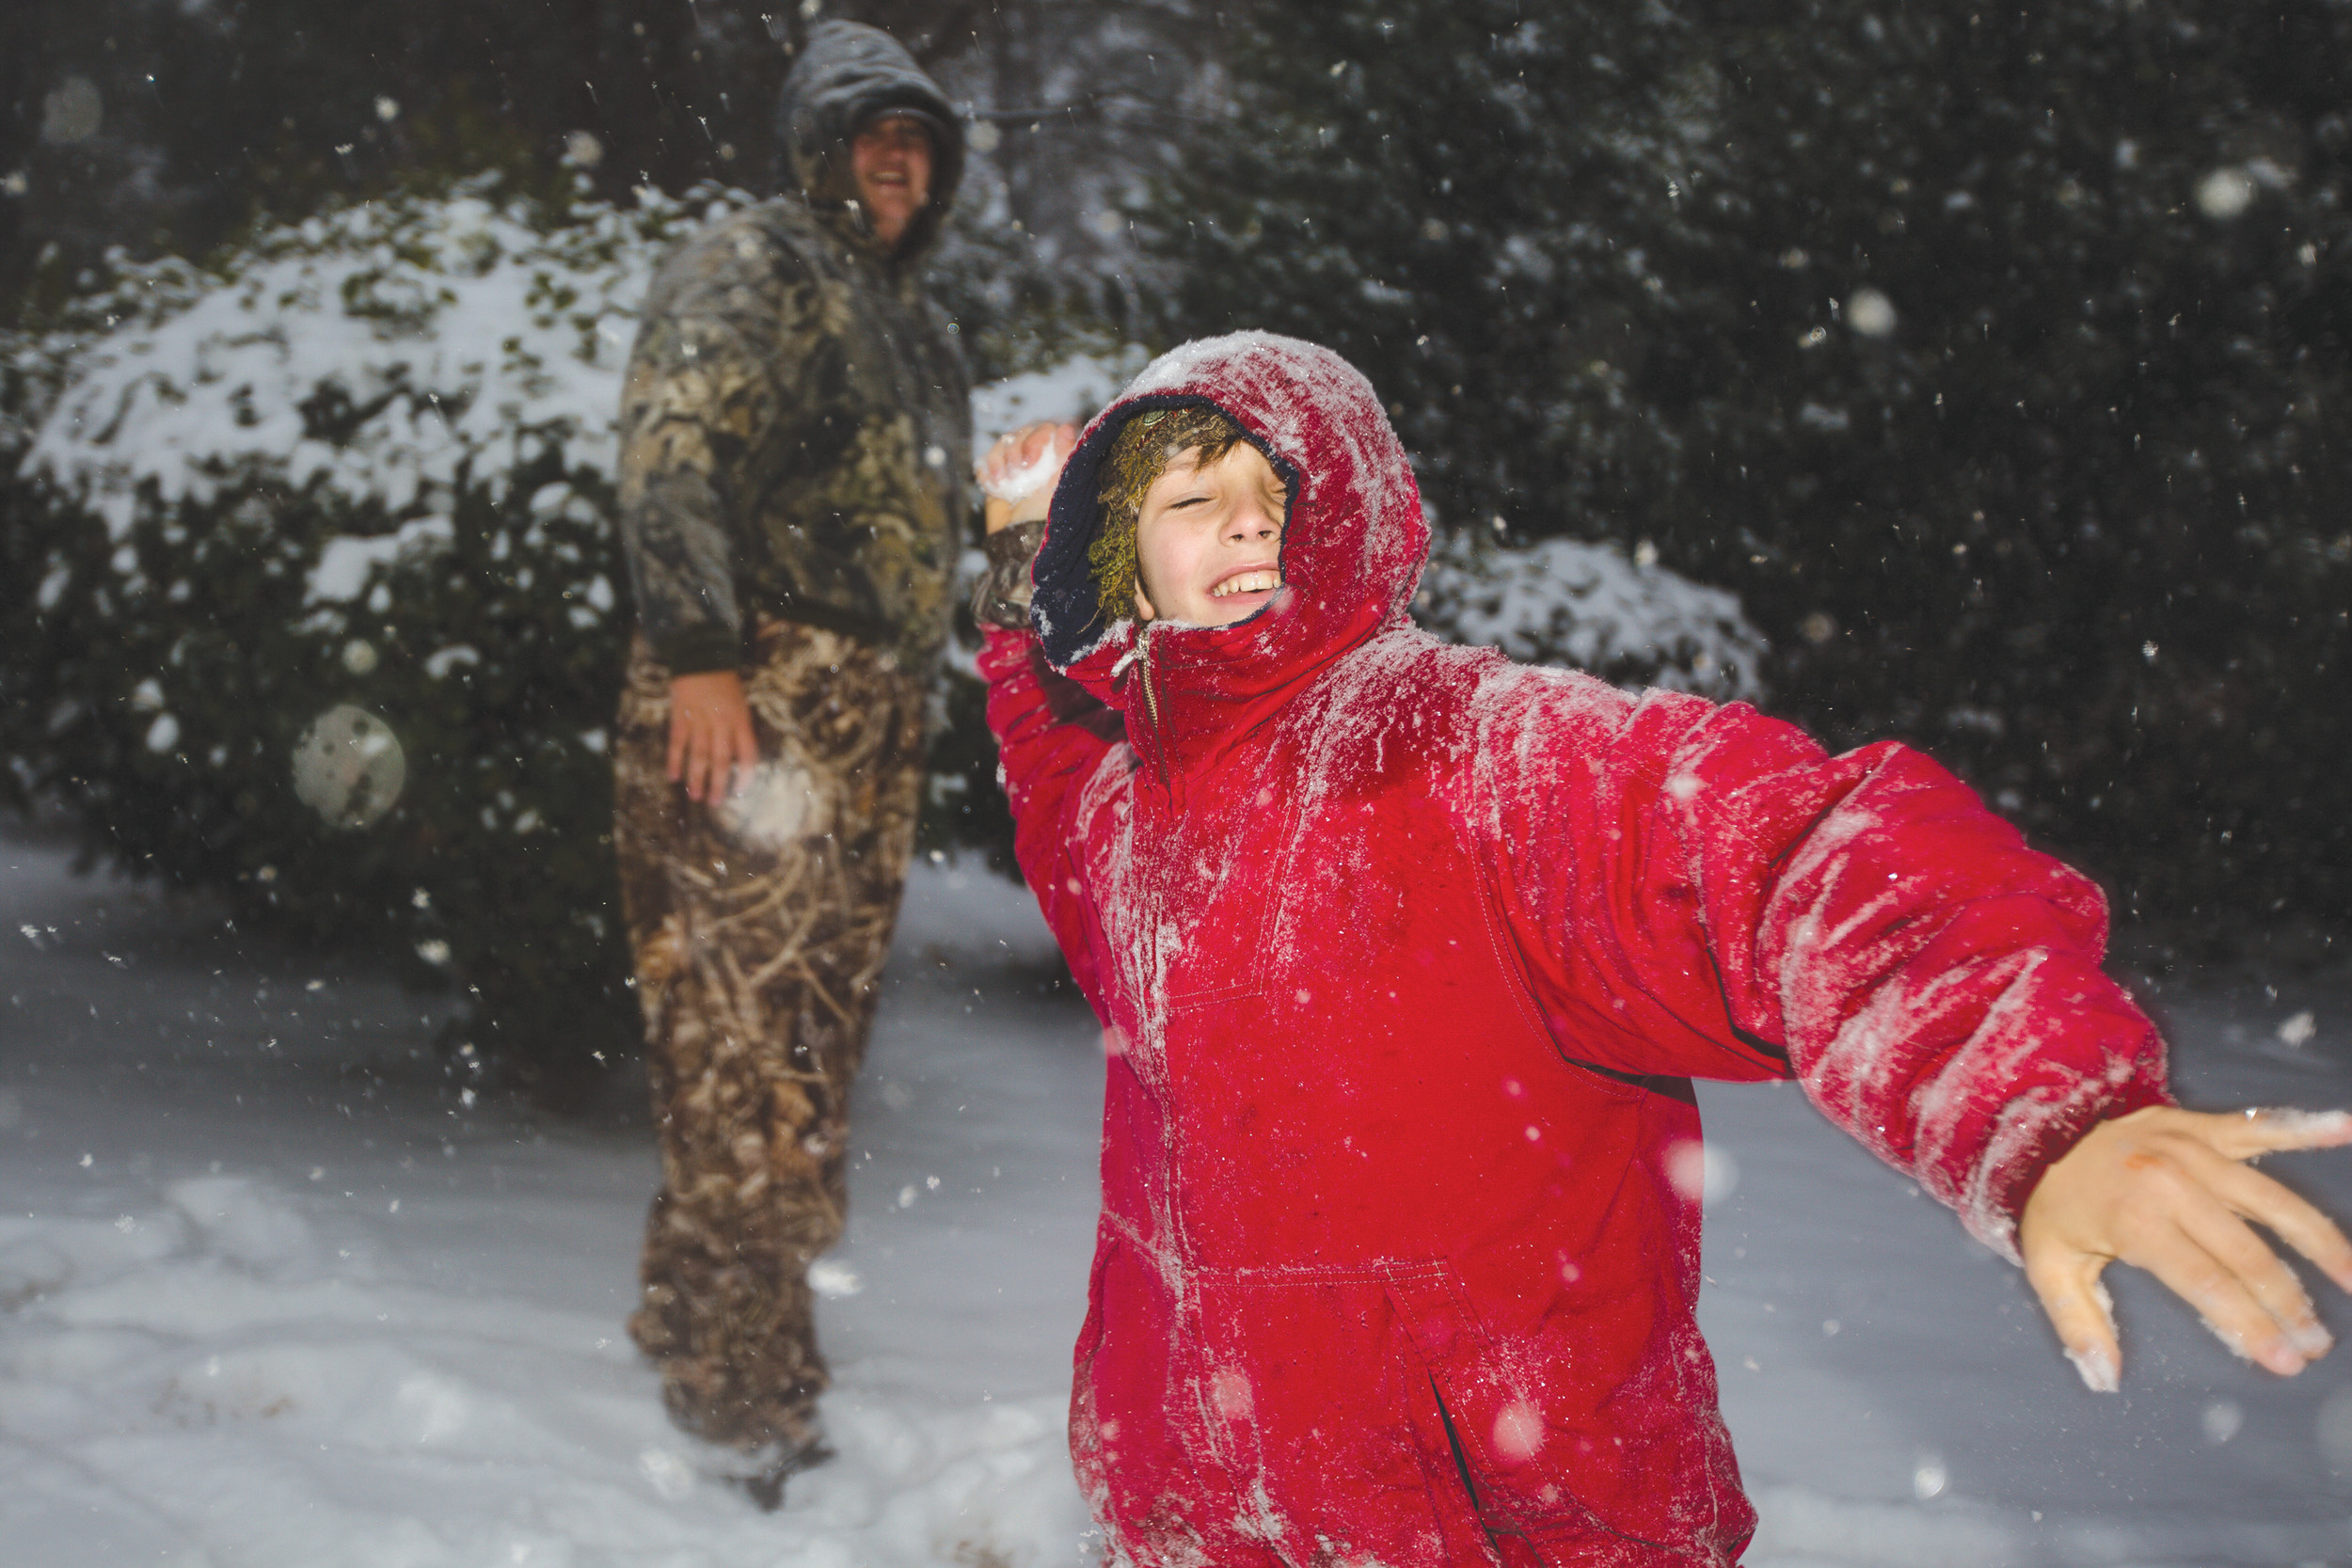 Emmitt Bilton throws snowballs in a front yard on Riley Street in Sumter on Wednesday afternoon.